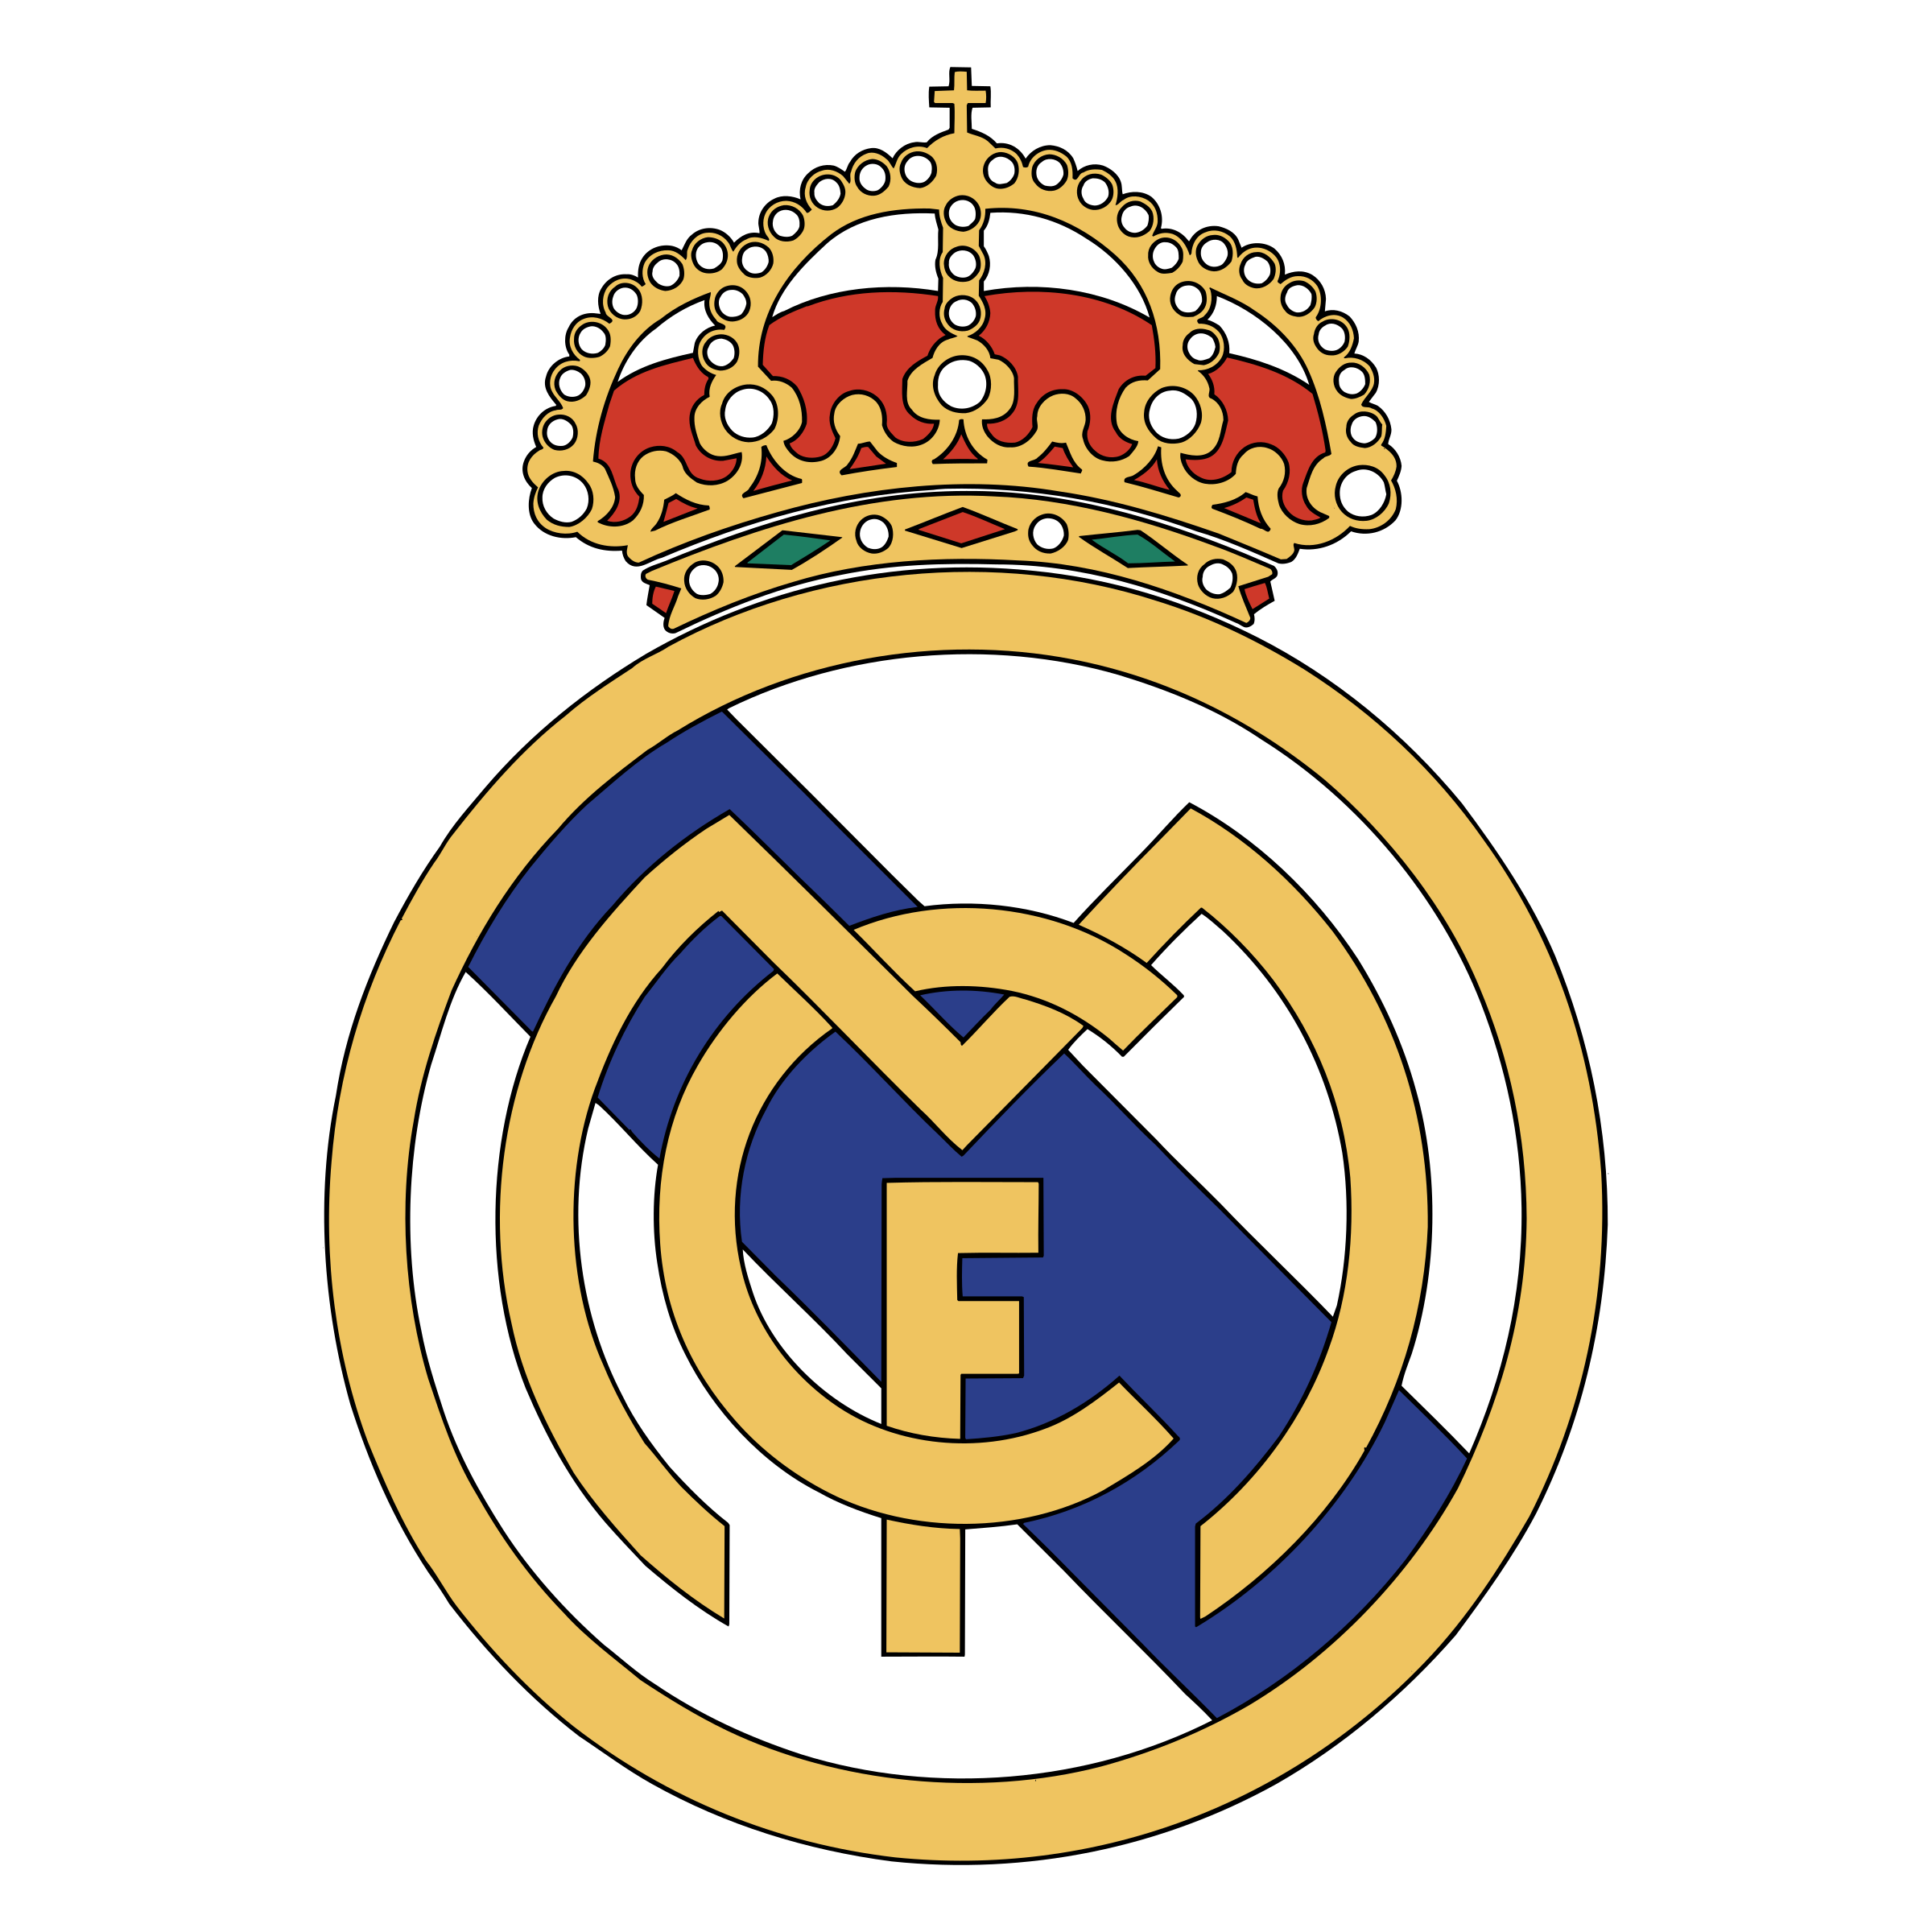 Logo real clipart image free stock Logo real madrid png clipart images gallery for free ... image free stock